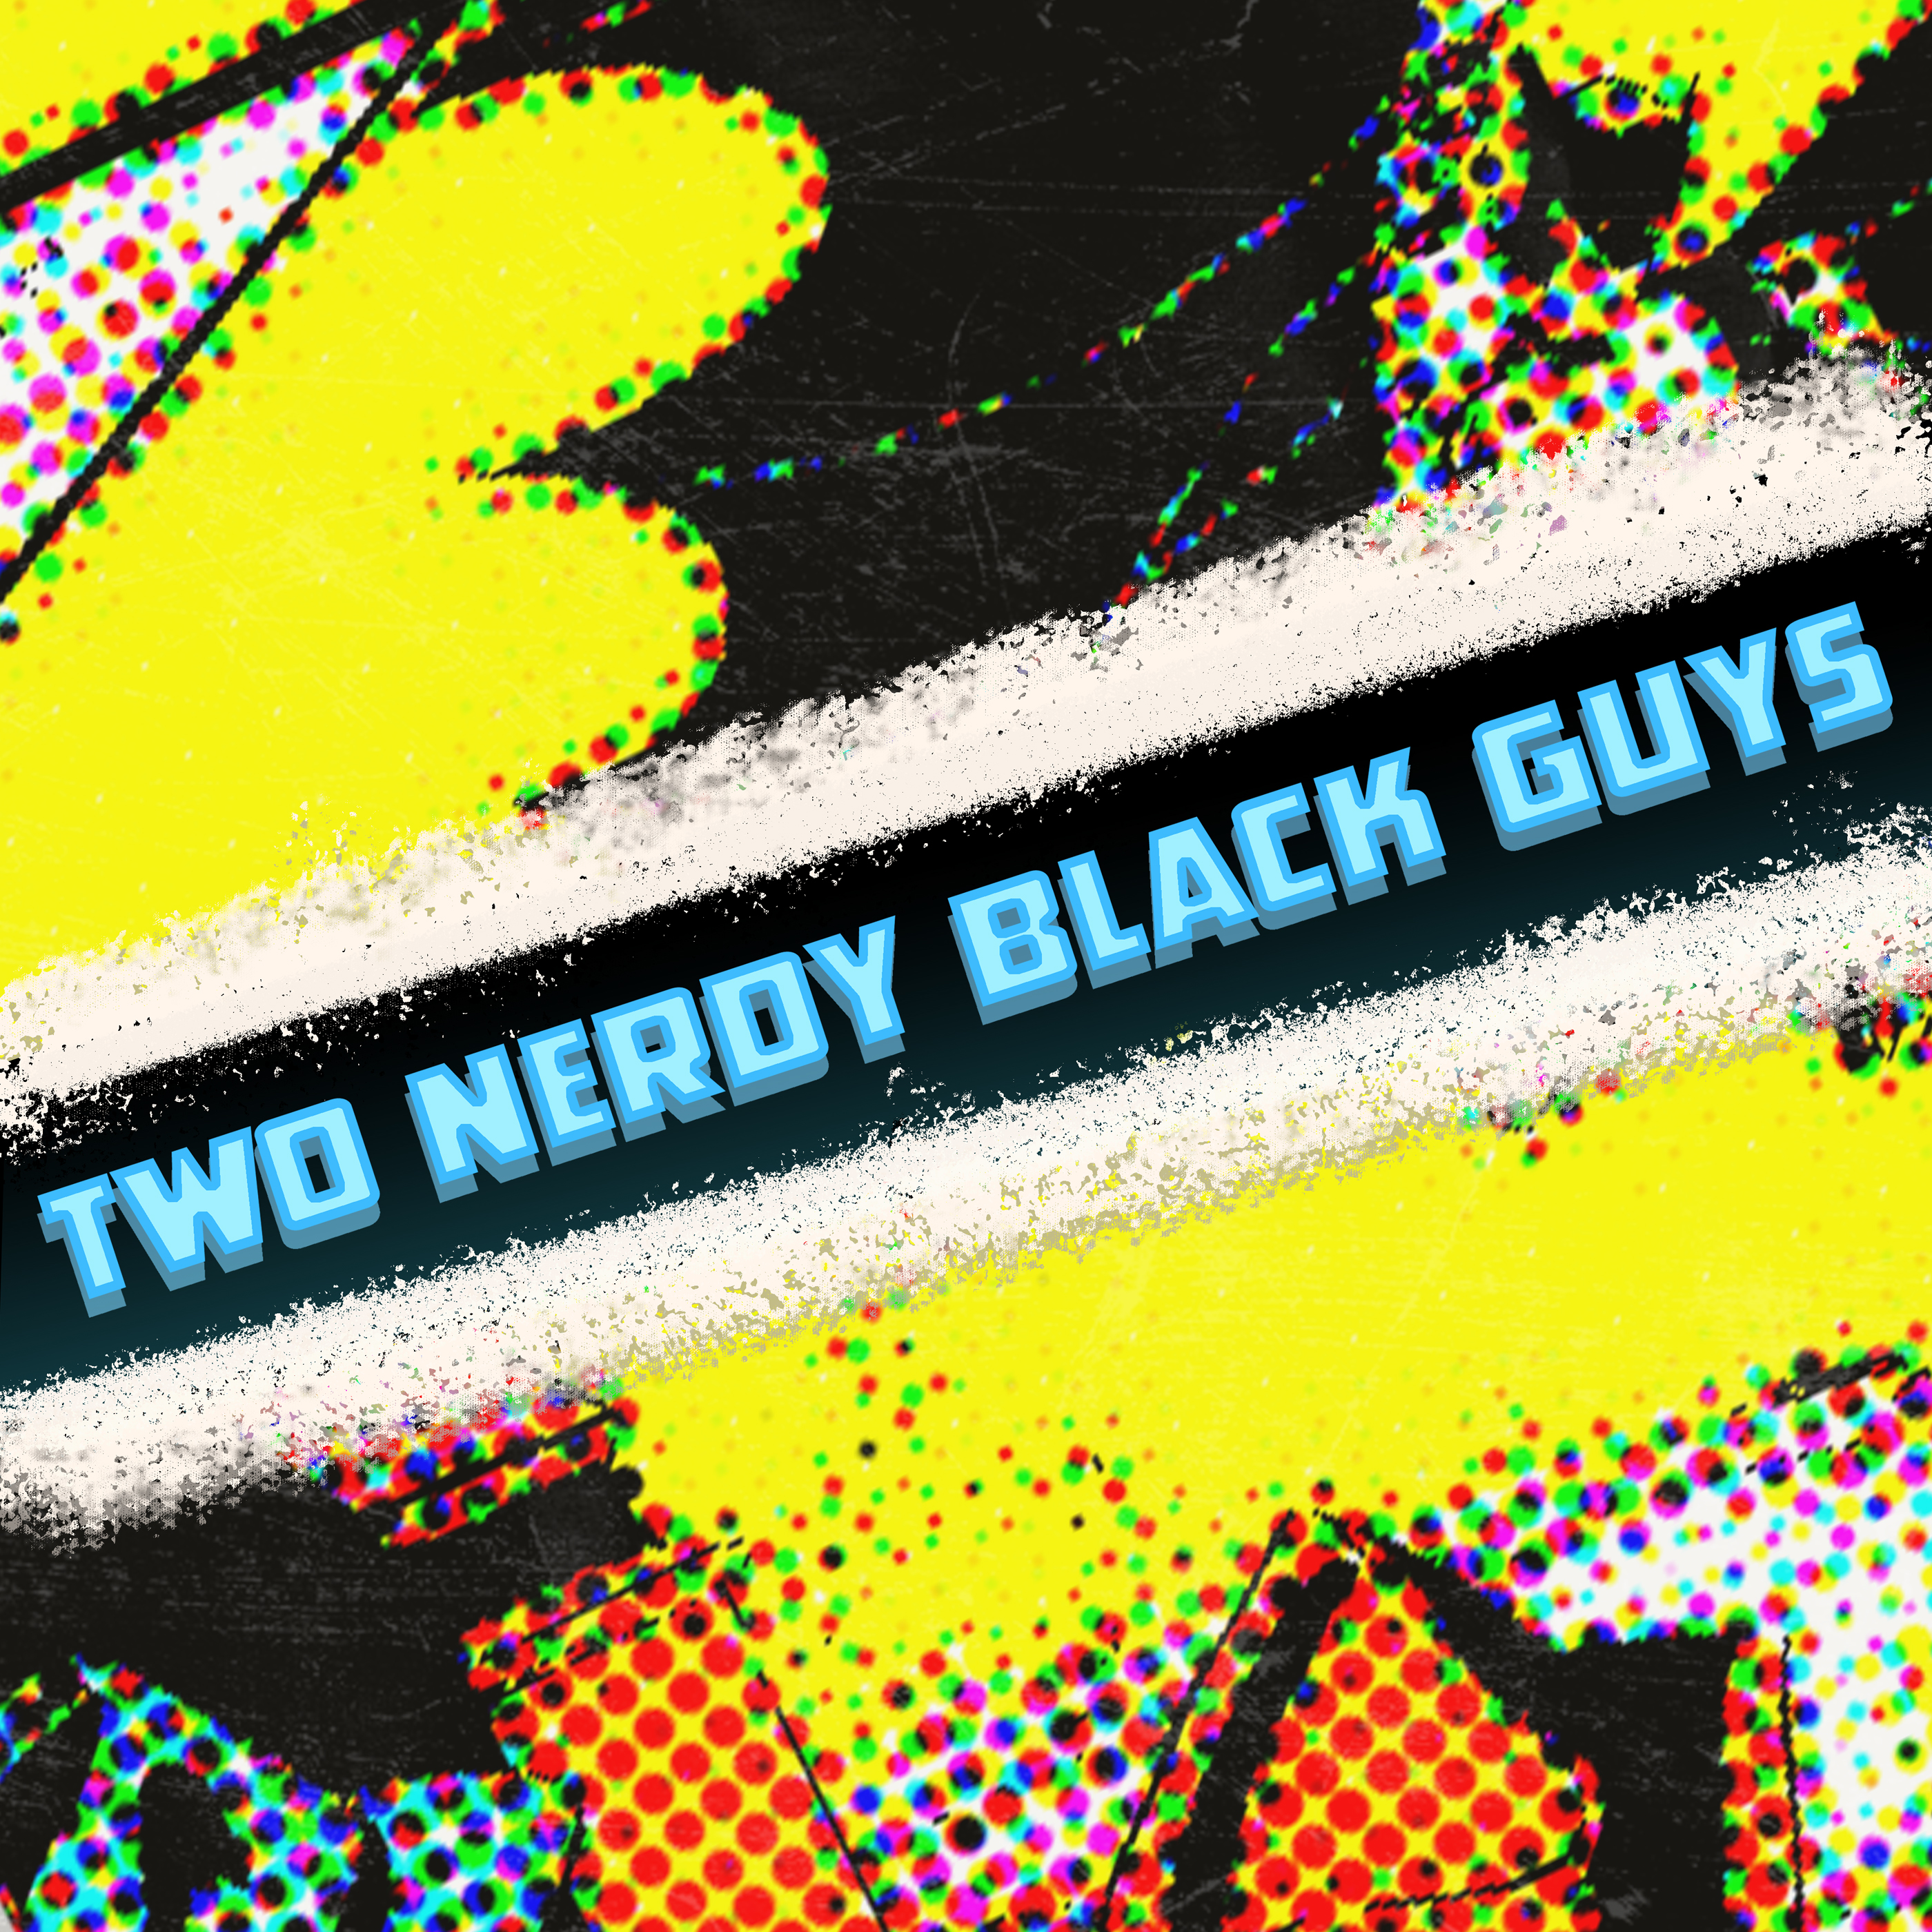 Two Nerdy Black Guys